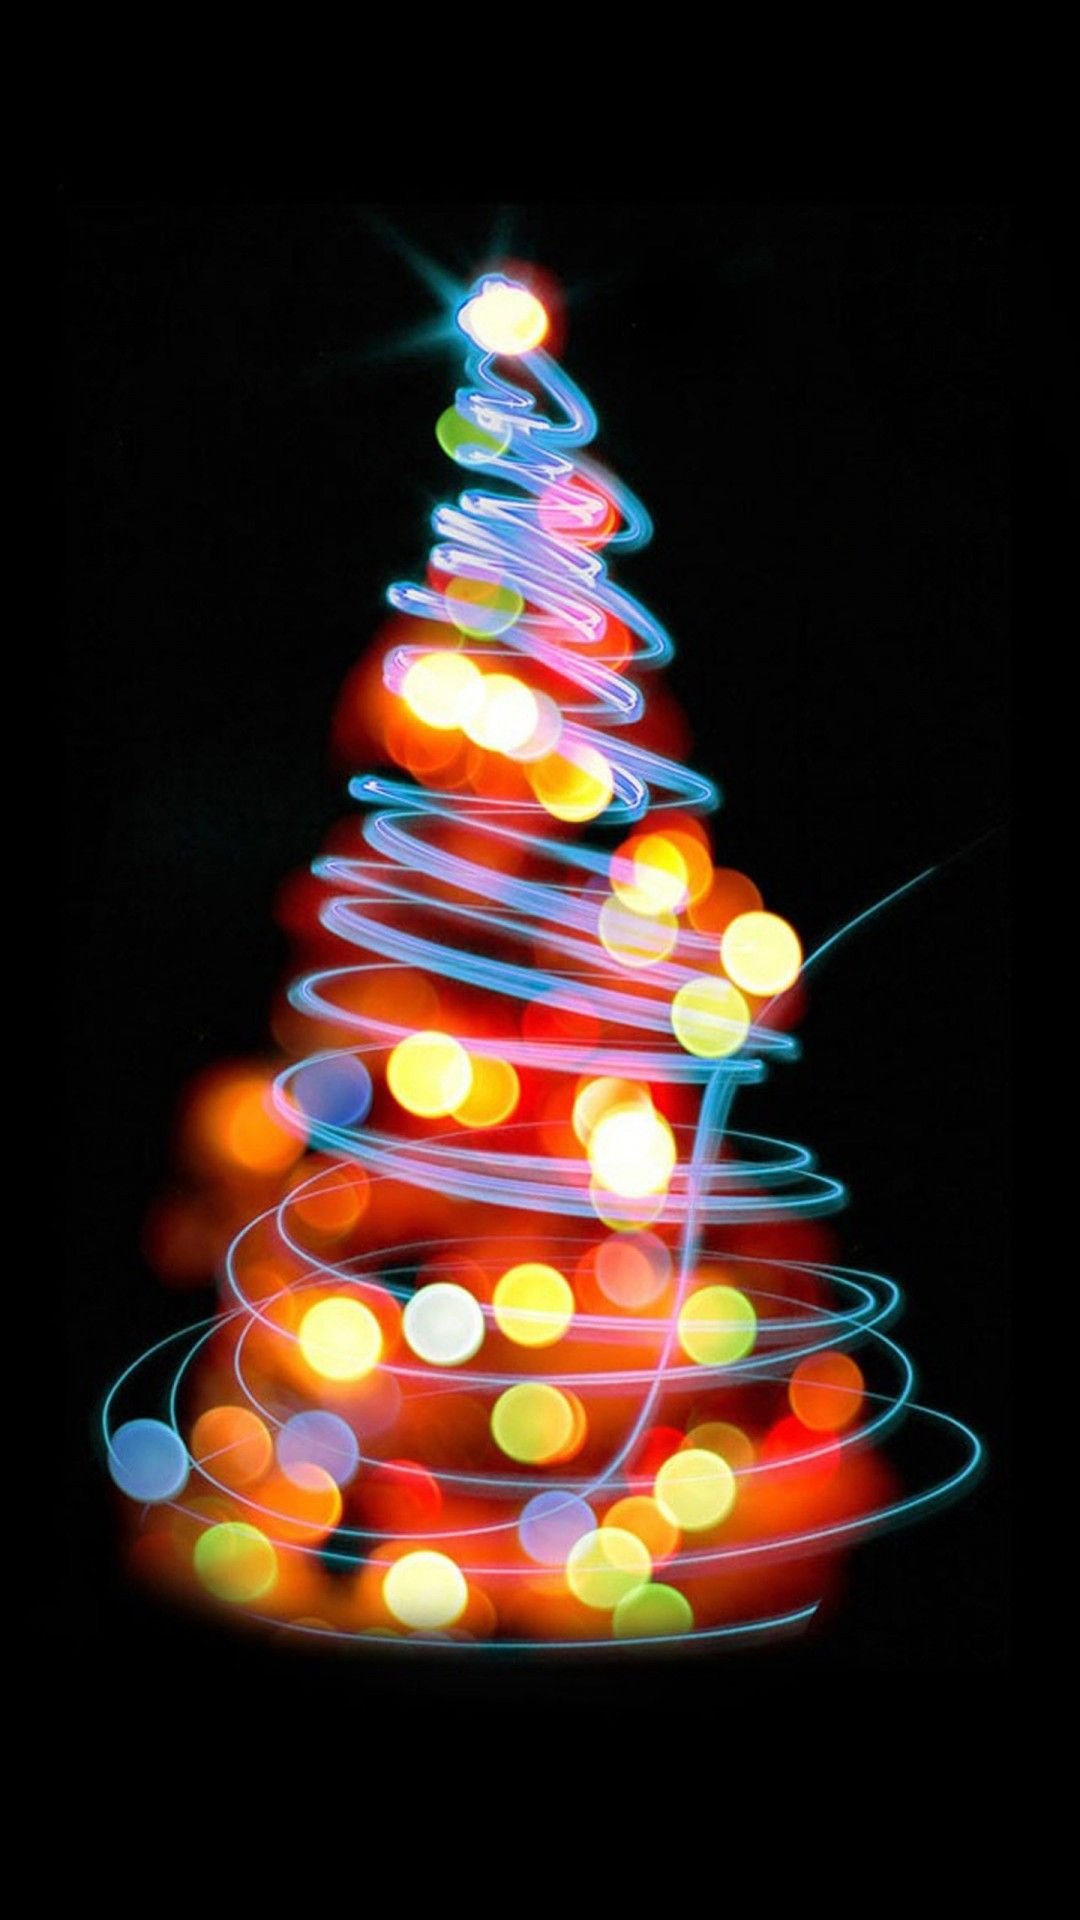 Merry Christmas Glowing HD Wallpaper for iPhone